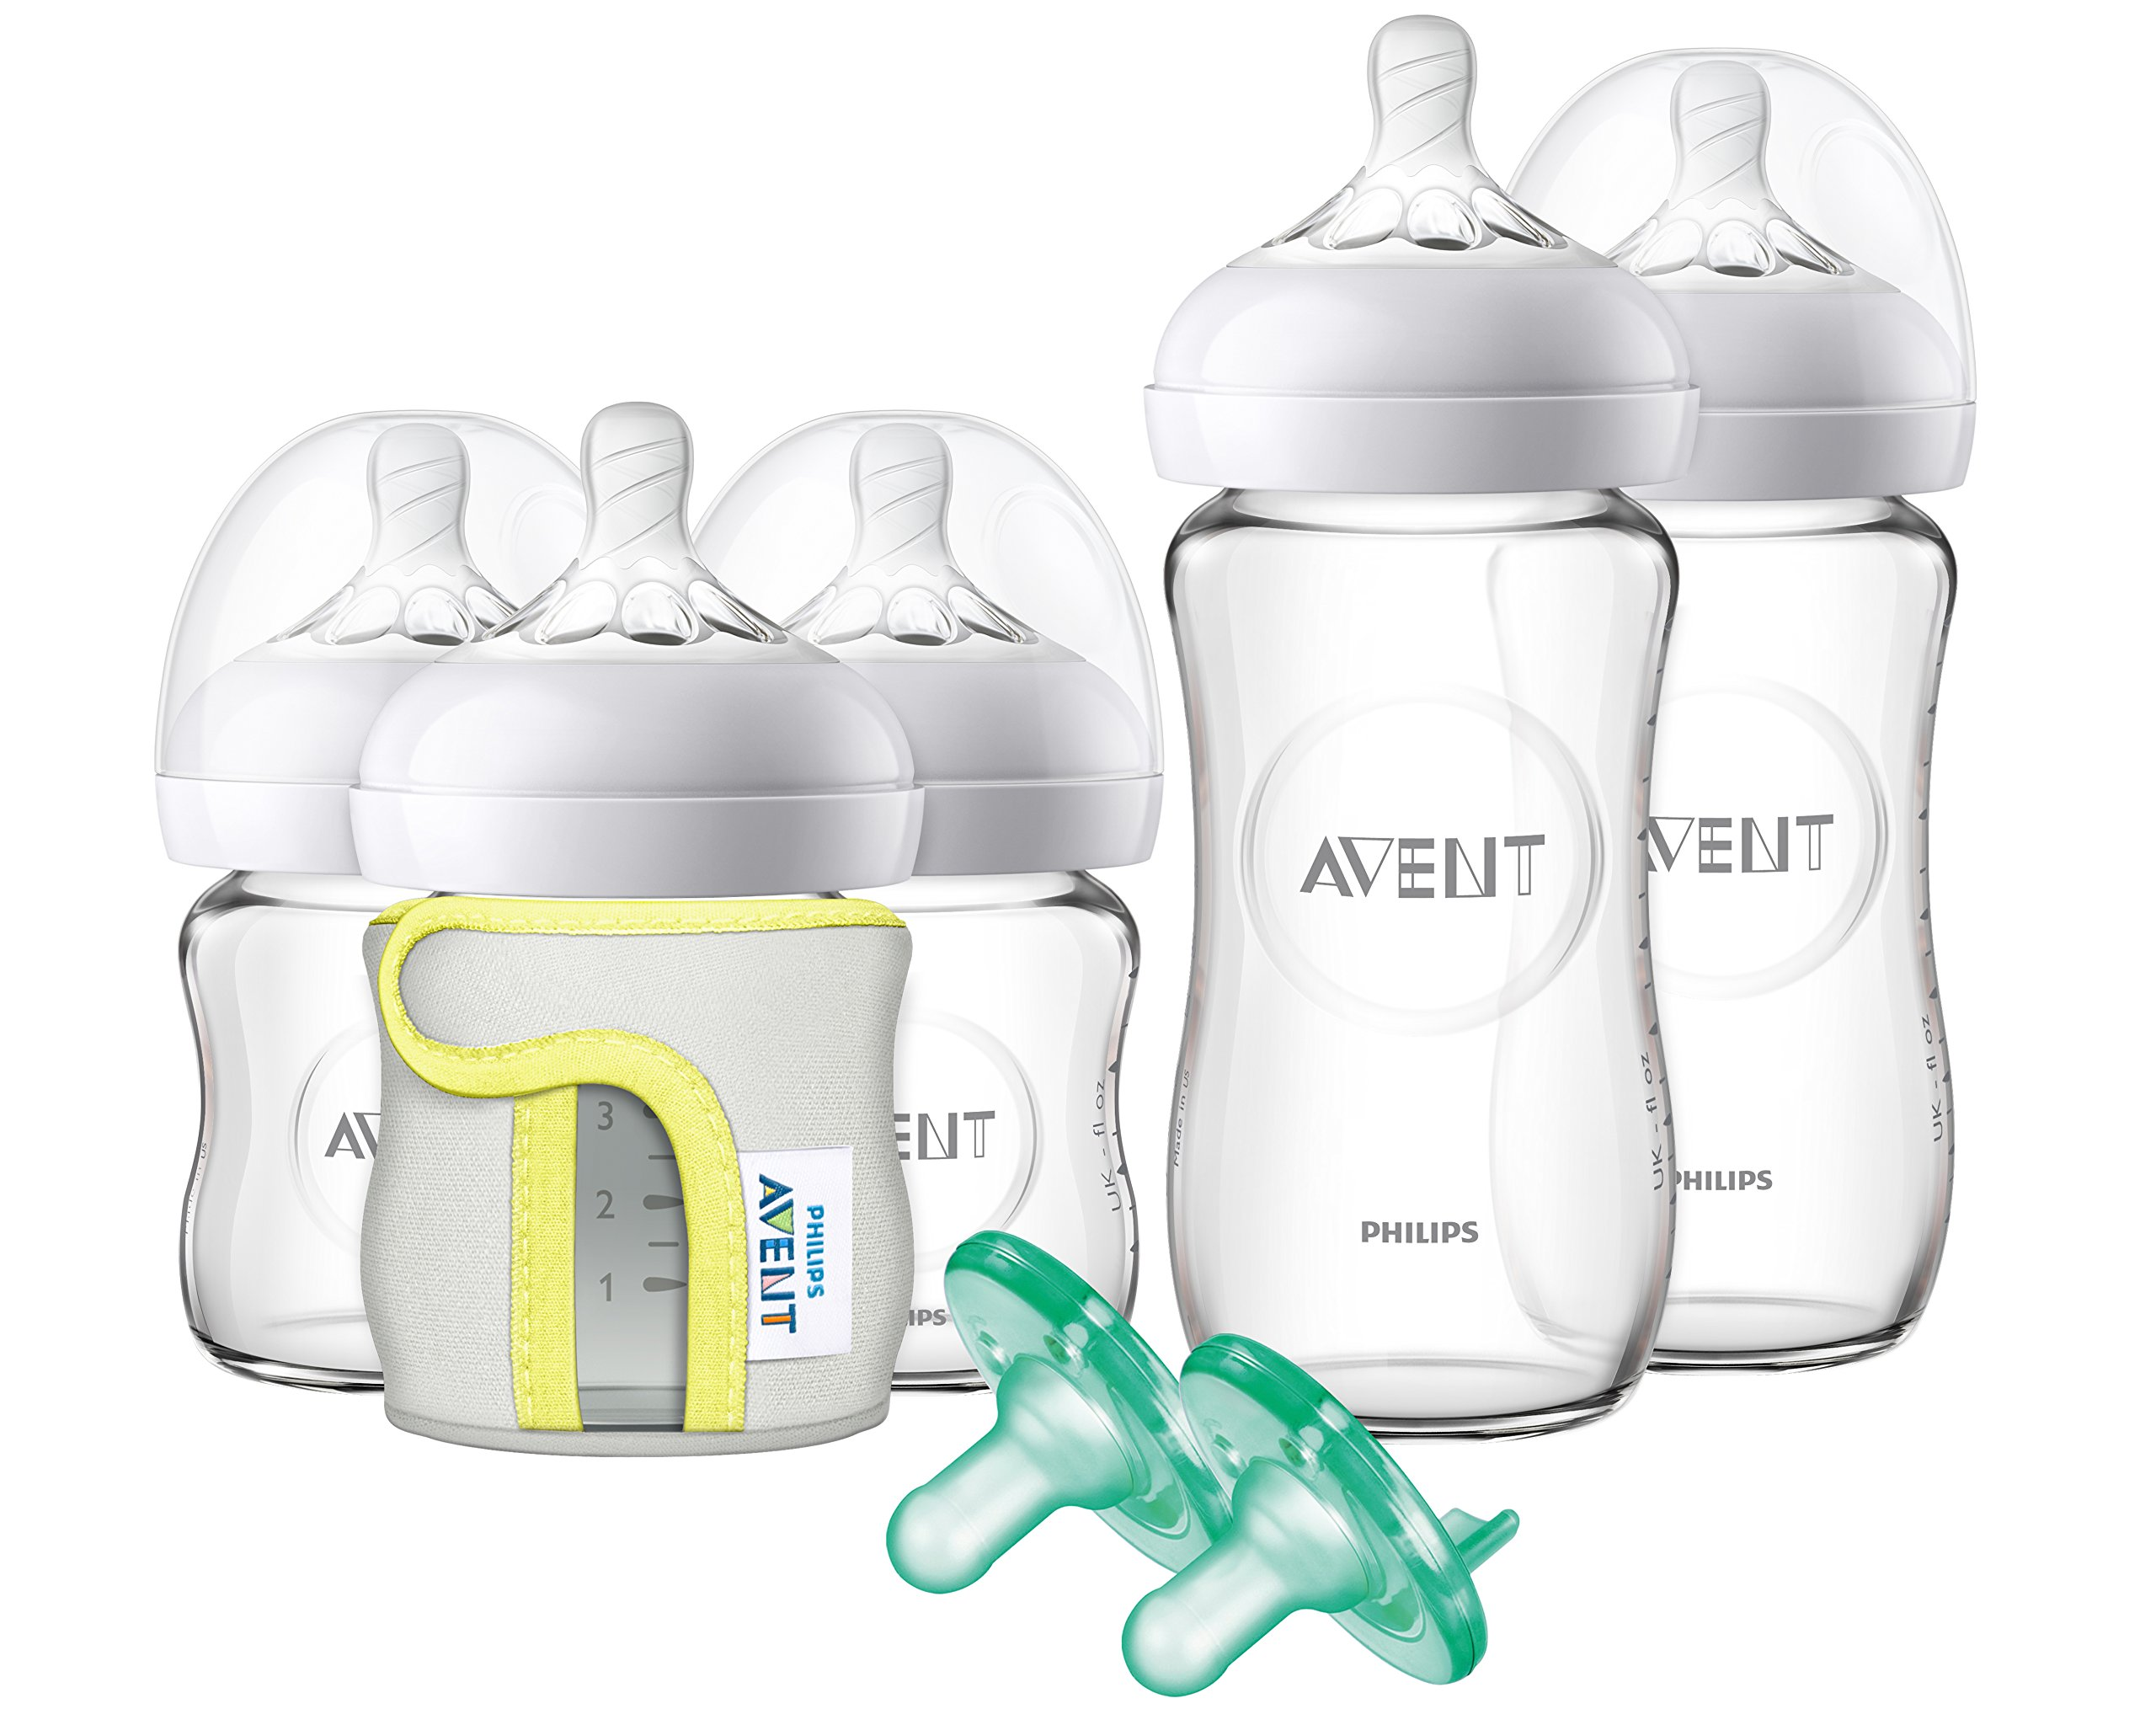 Philips Avent Natural Glass Bottle Baby Gift Set, SCD201/01 by Philips AVENT (Image #1)